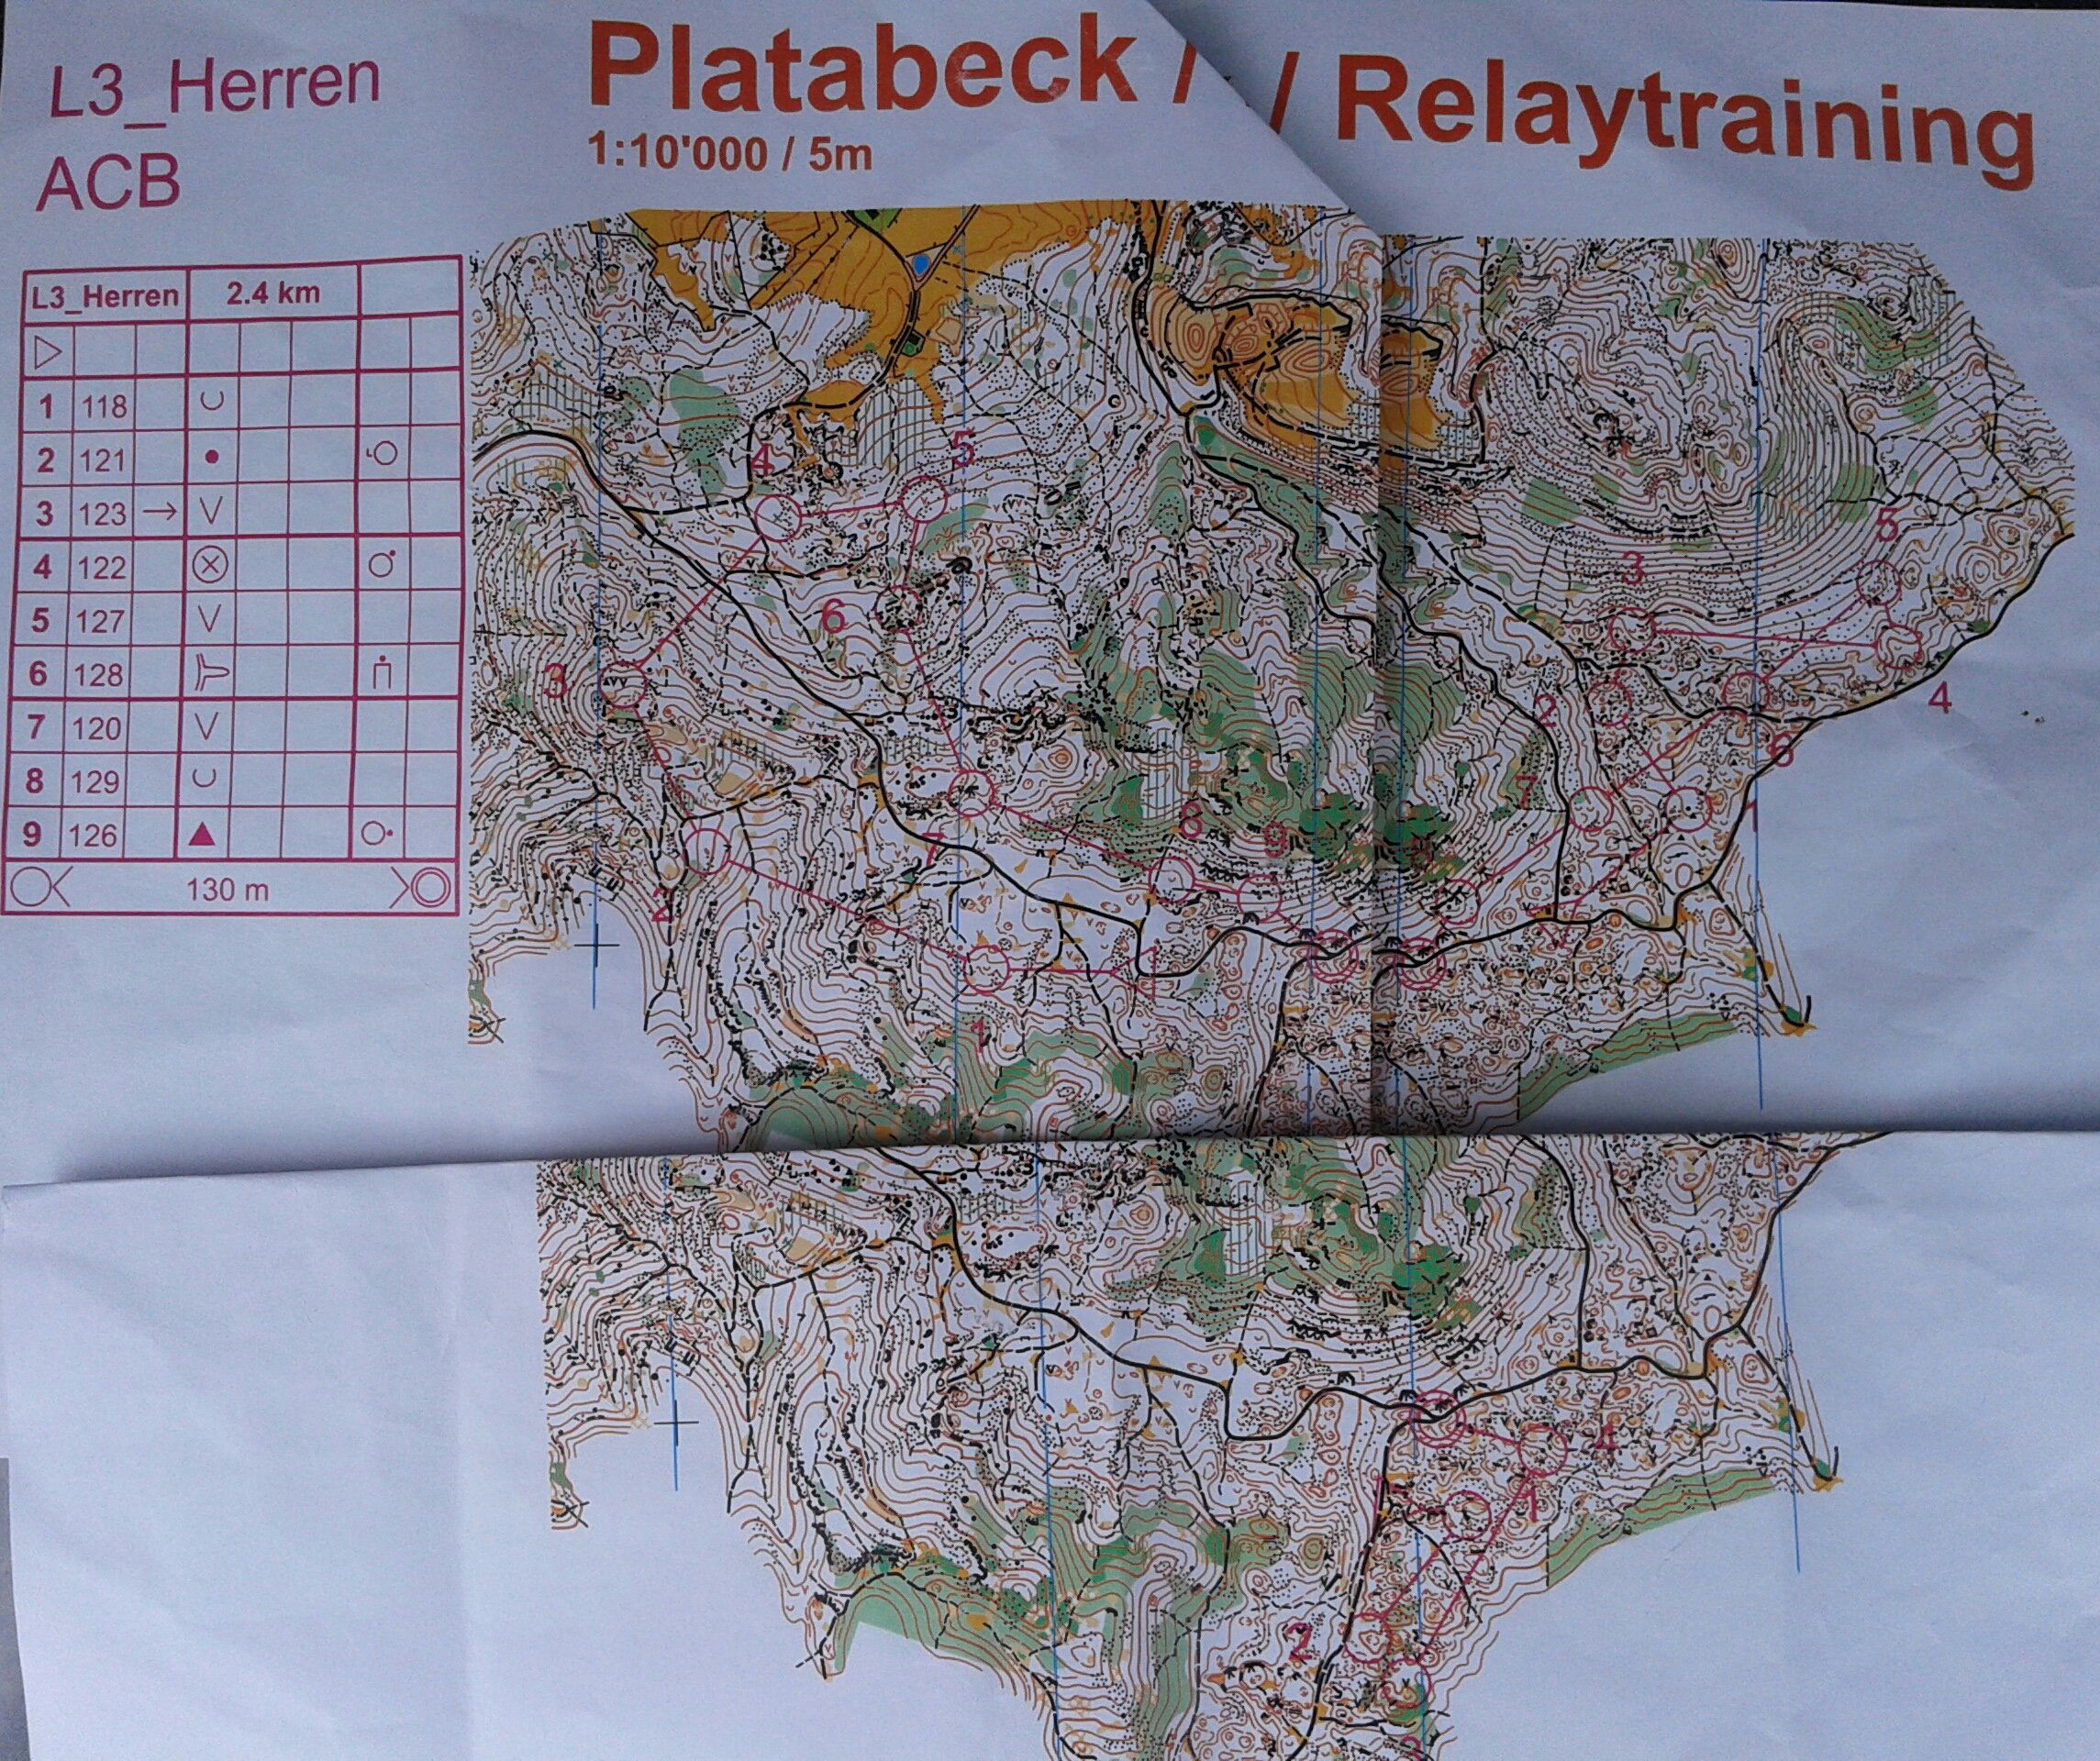 Relay training (21/05/2014)